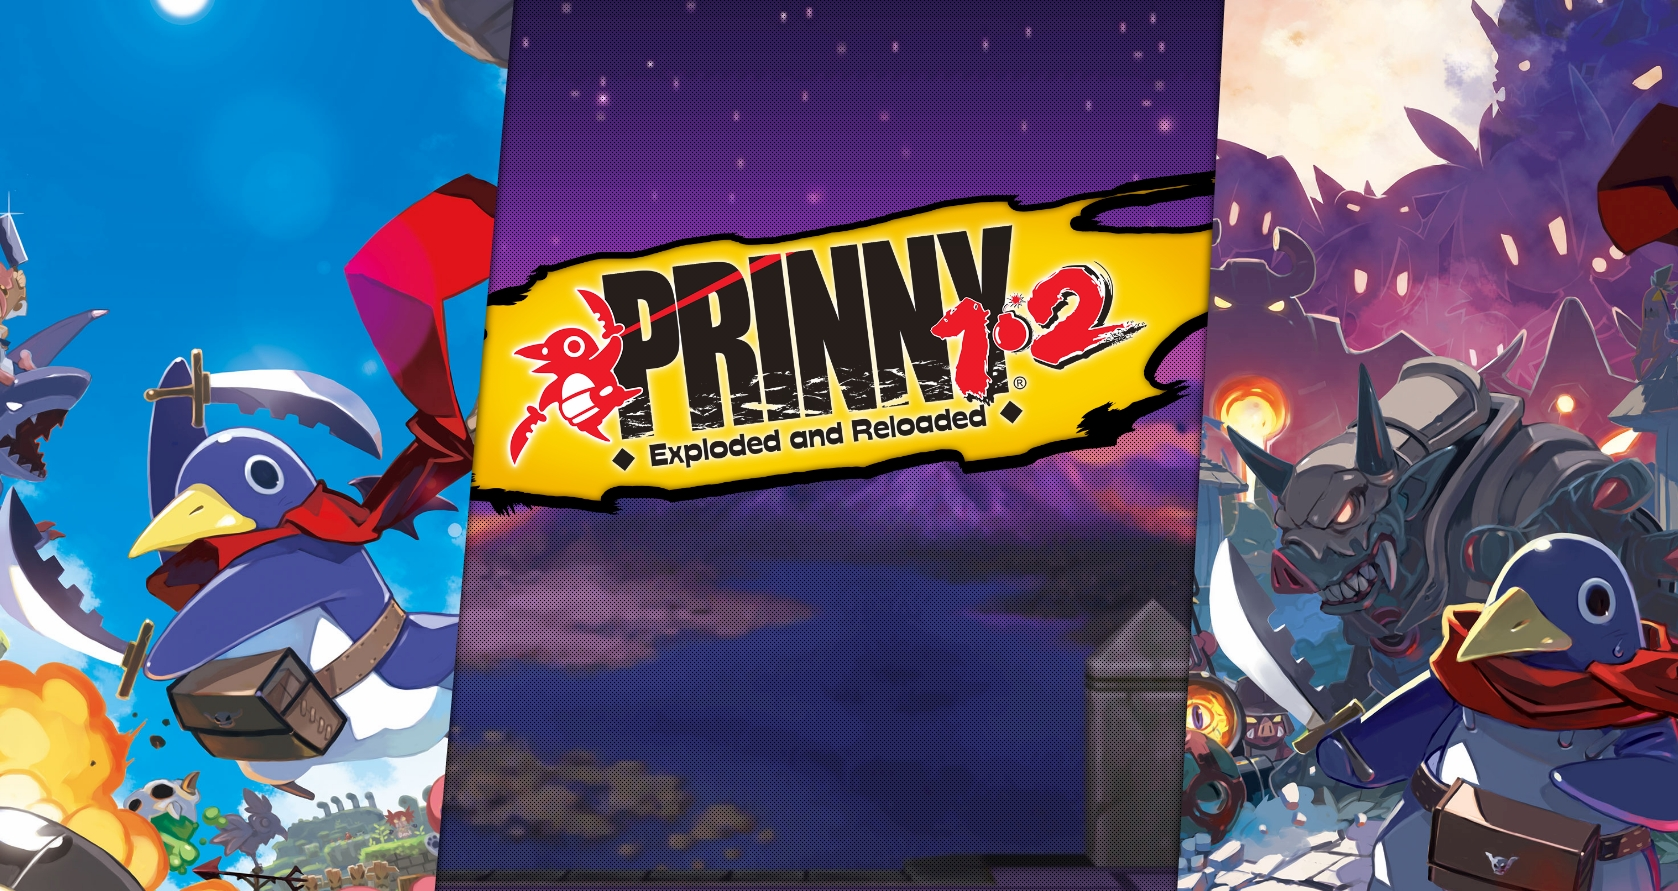 Prinny 1•2: Exploded and Reloaded Heads To Nintendo Switch This Fall